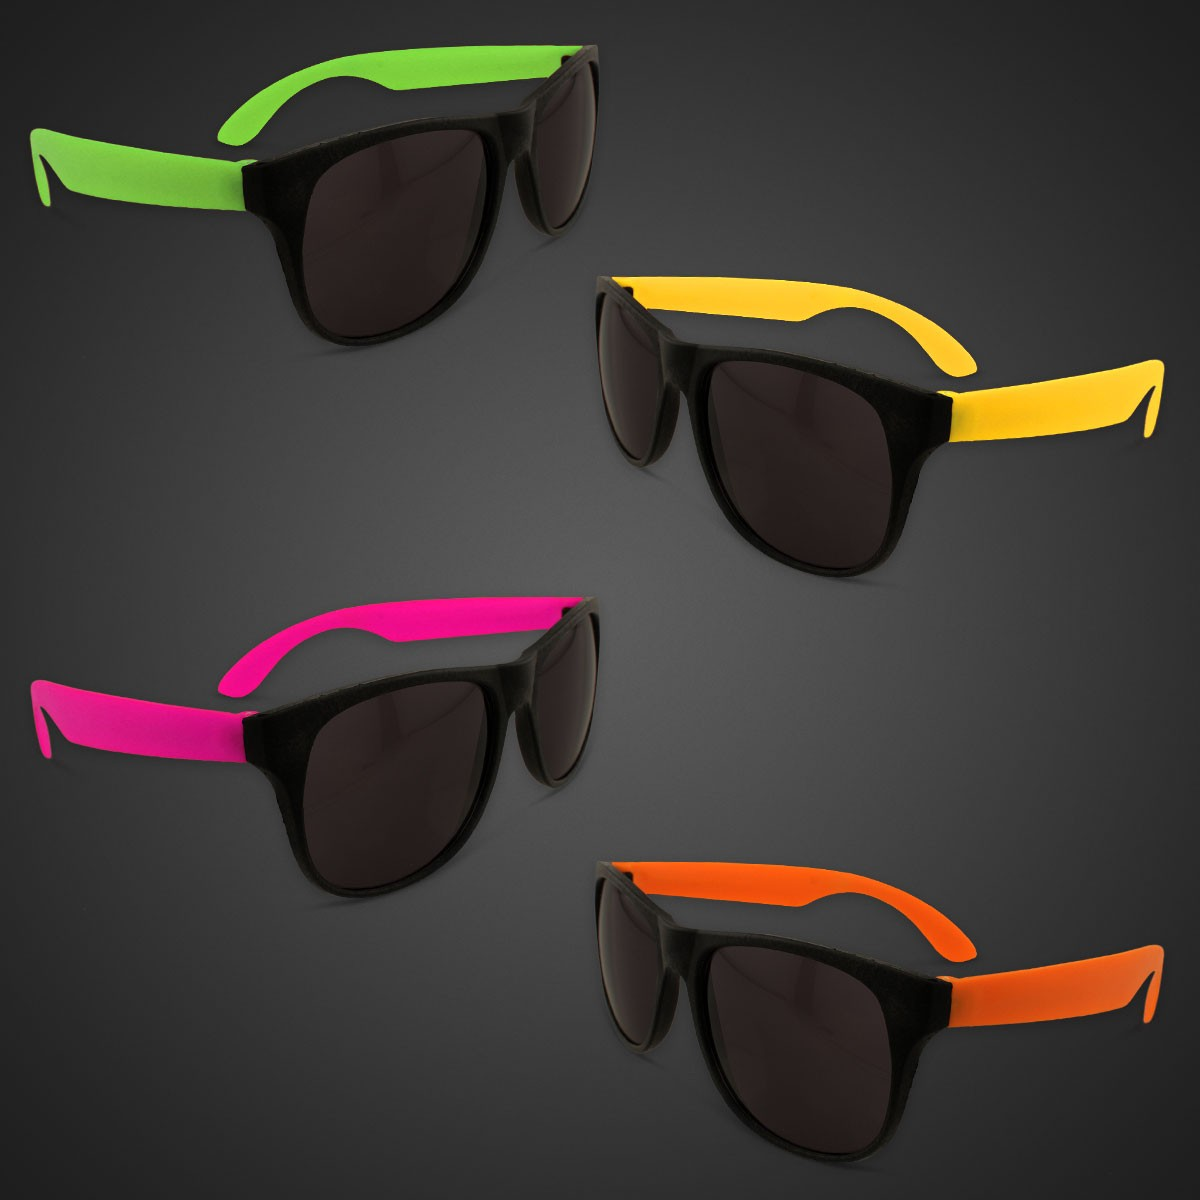 NEON SUNGLASSES- ASST. COLORS